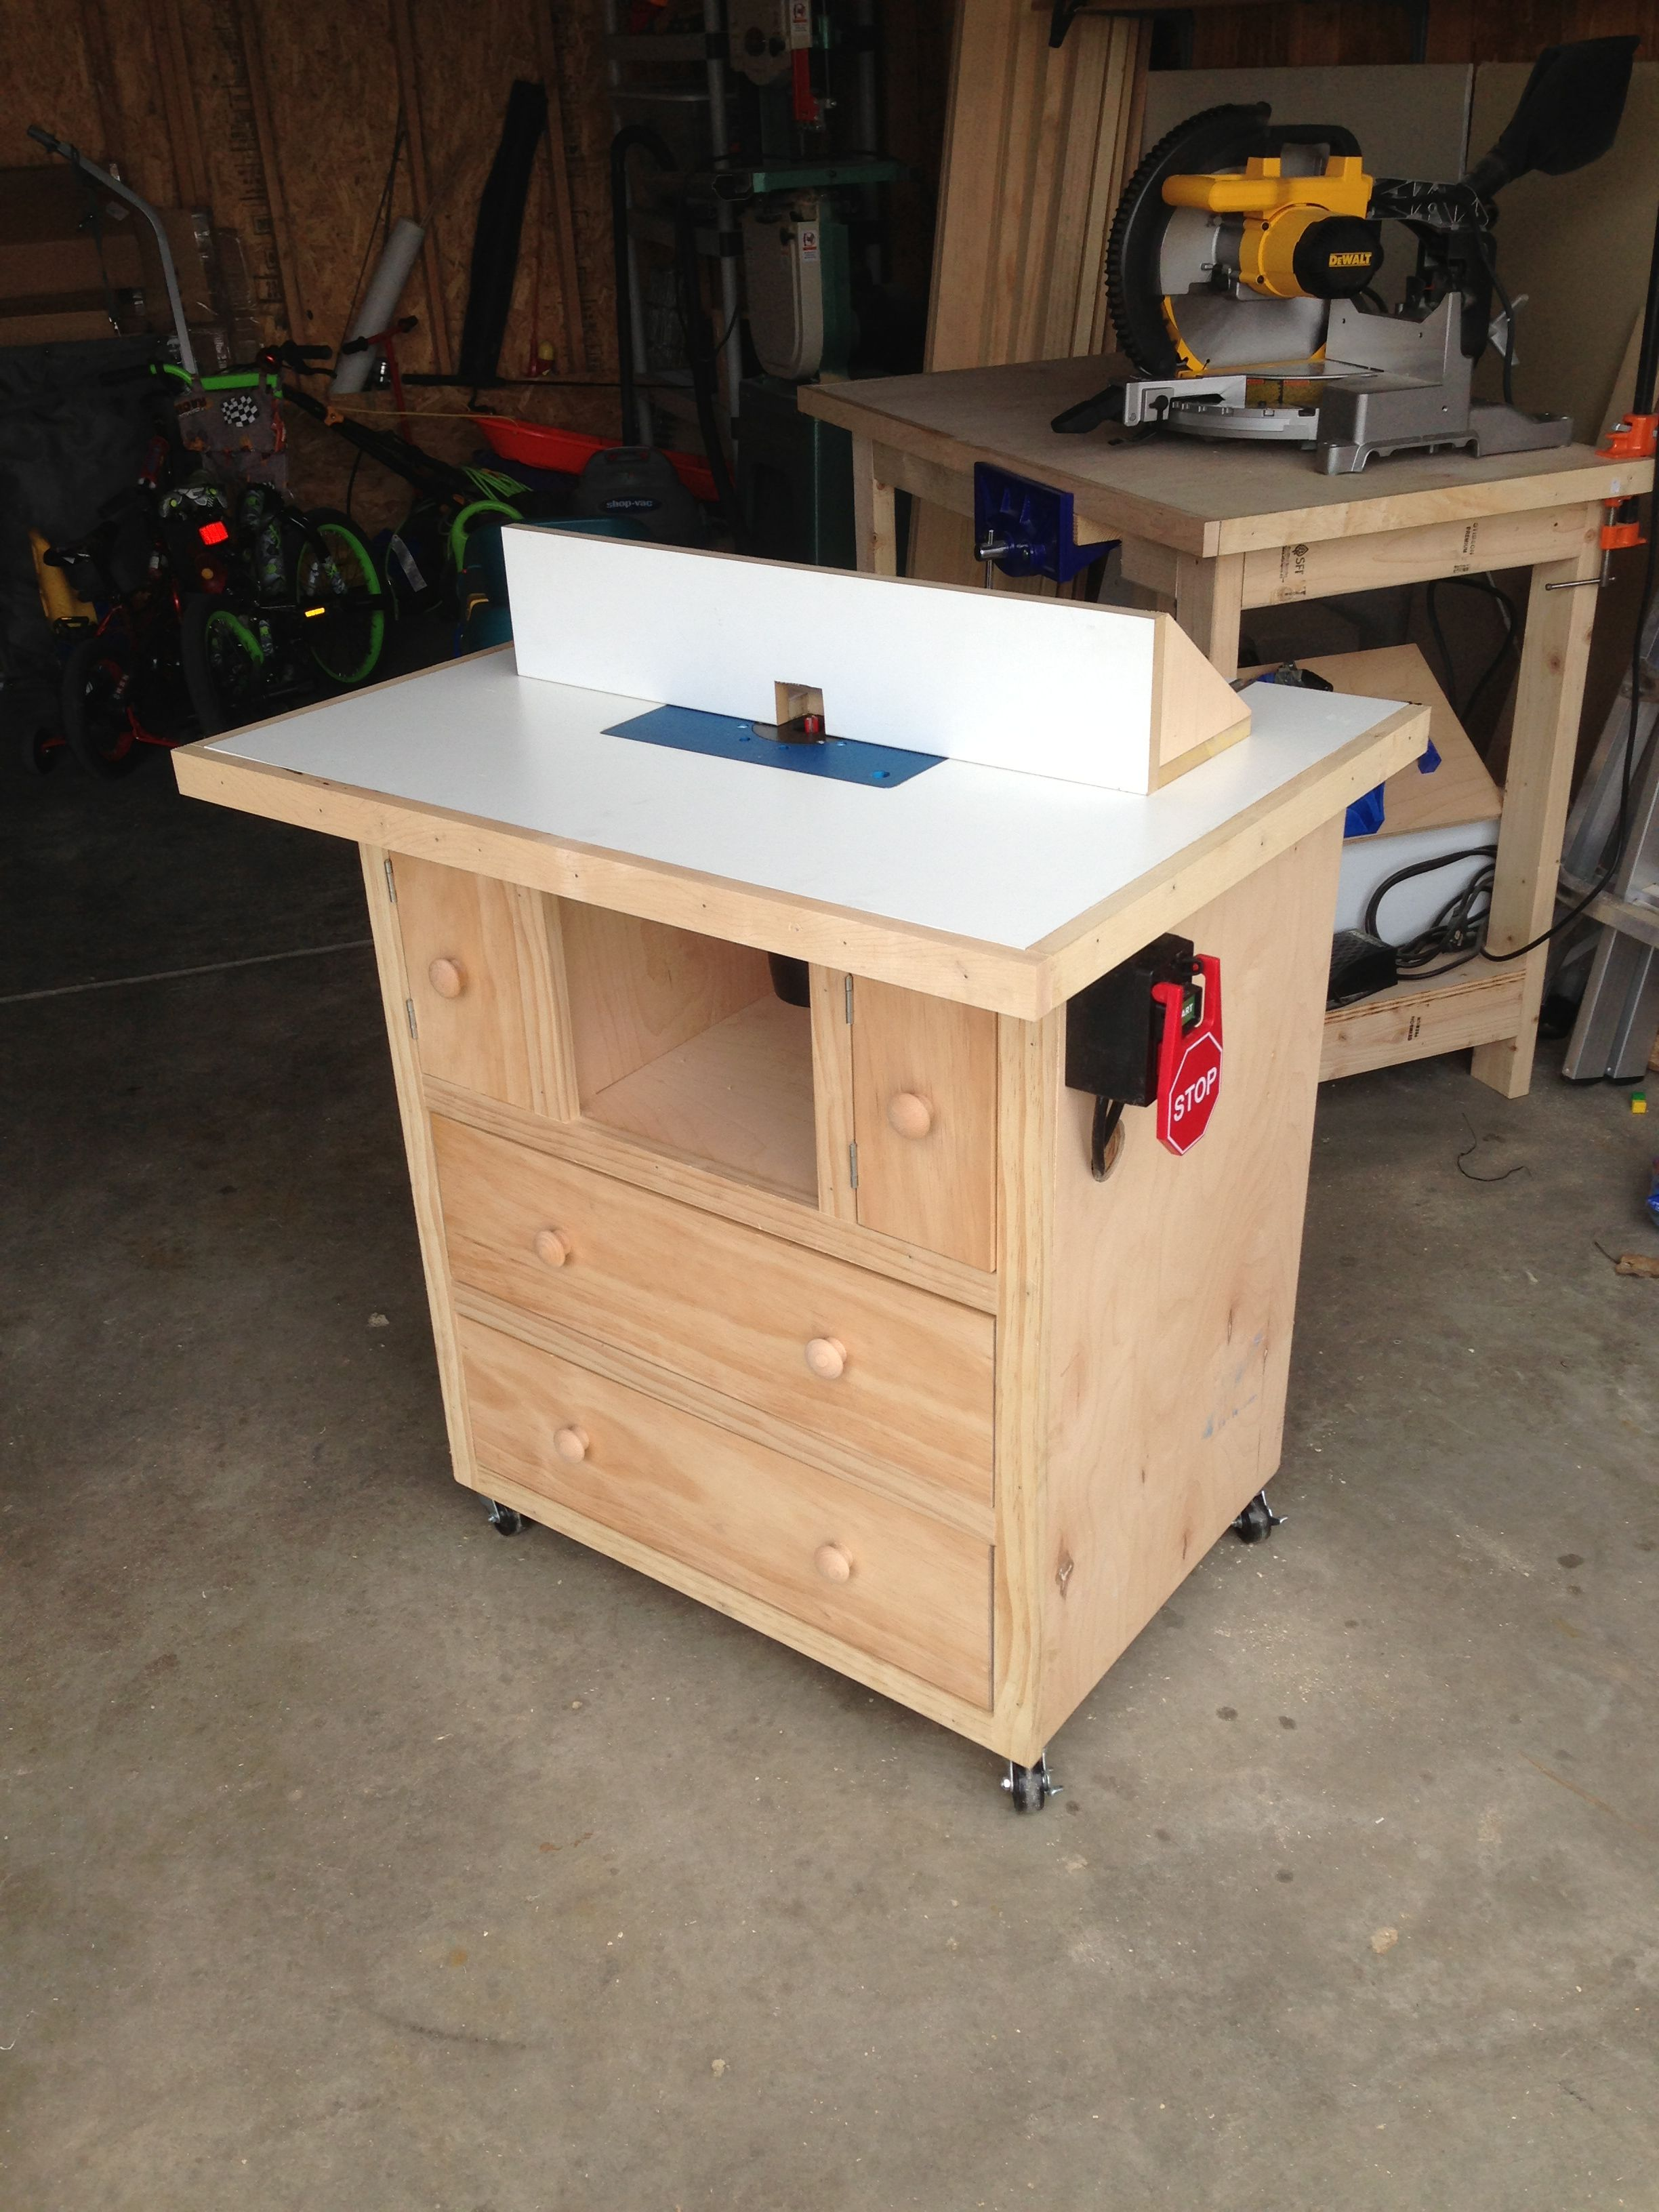 Router table do it yourself home projects from ana white shop router table do it yourself home projects from ana white solutioingenieria Choice Image